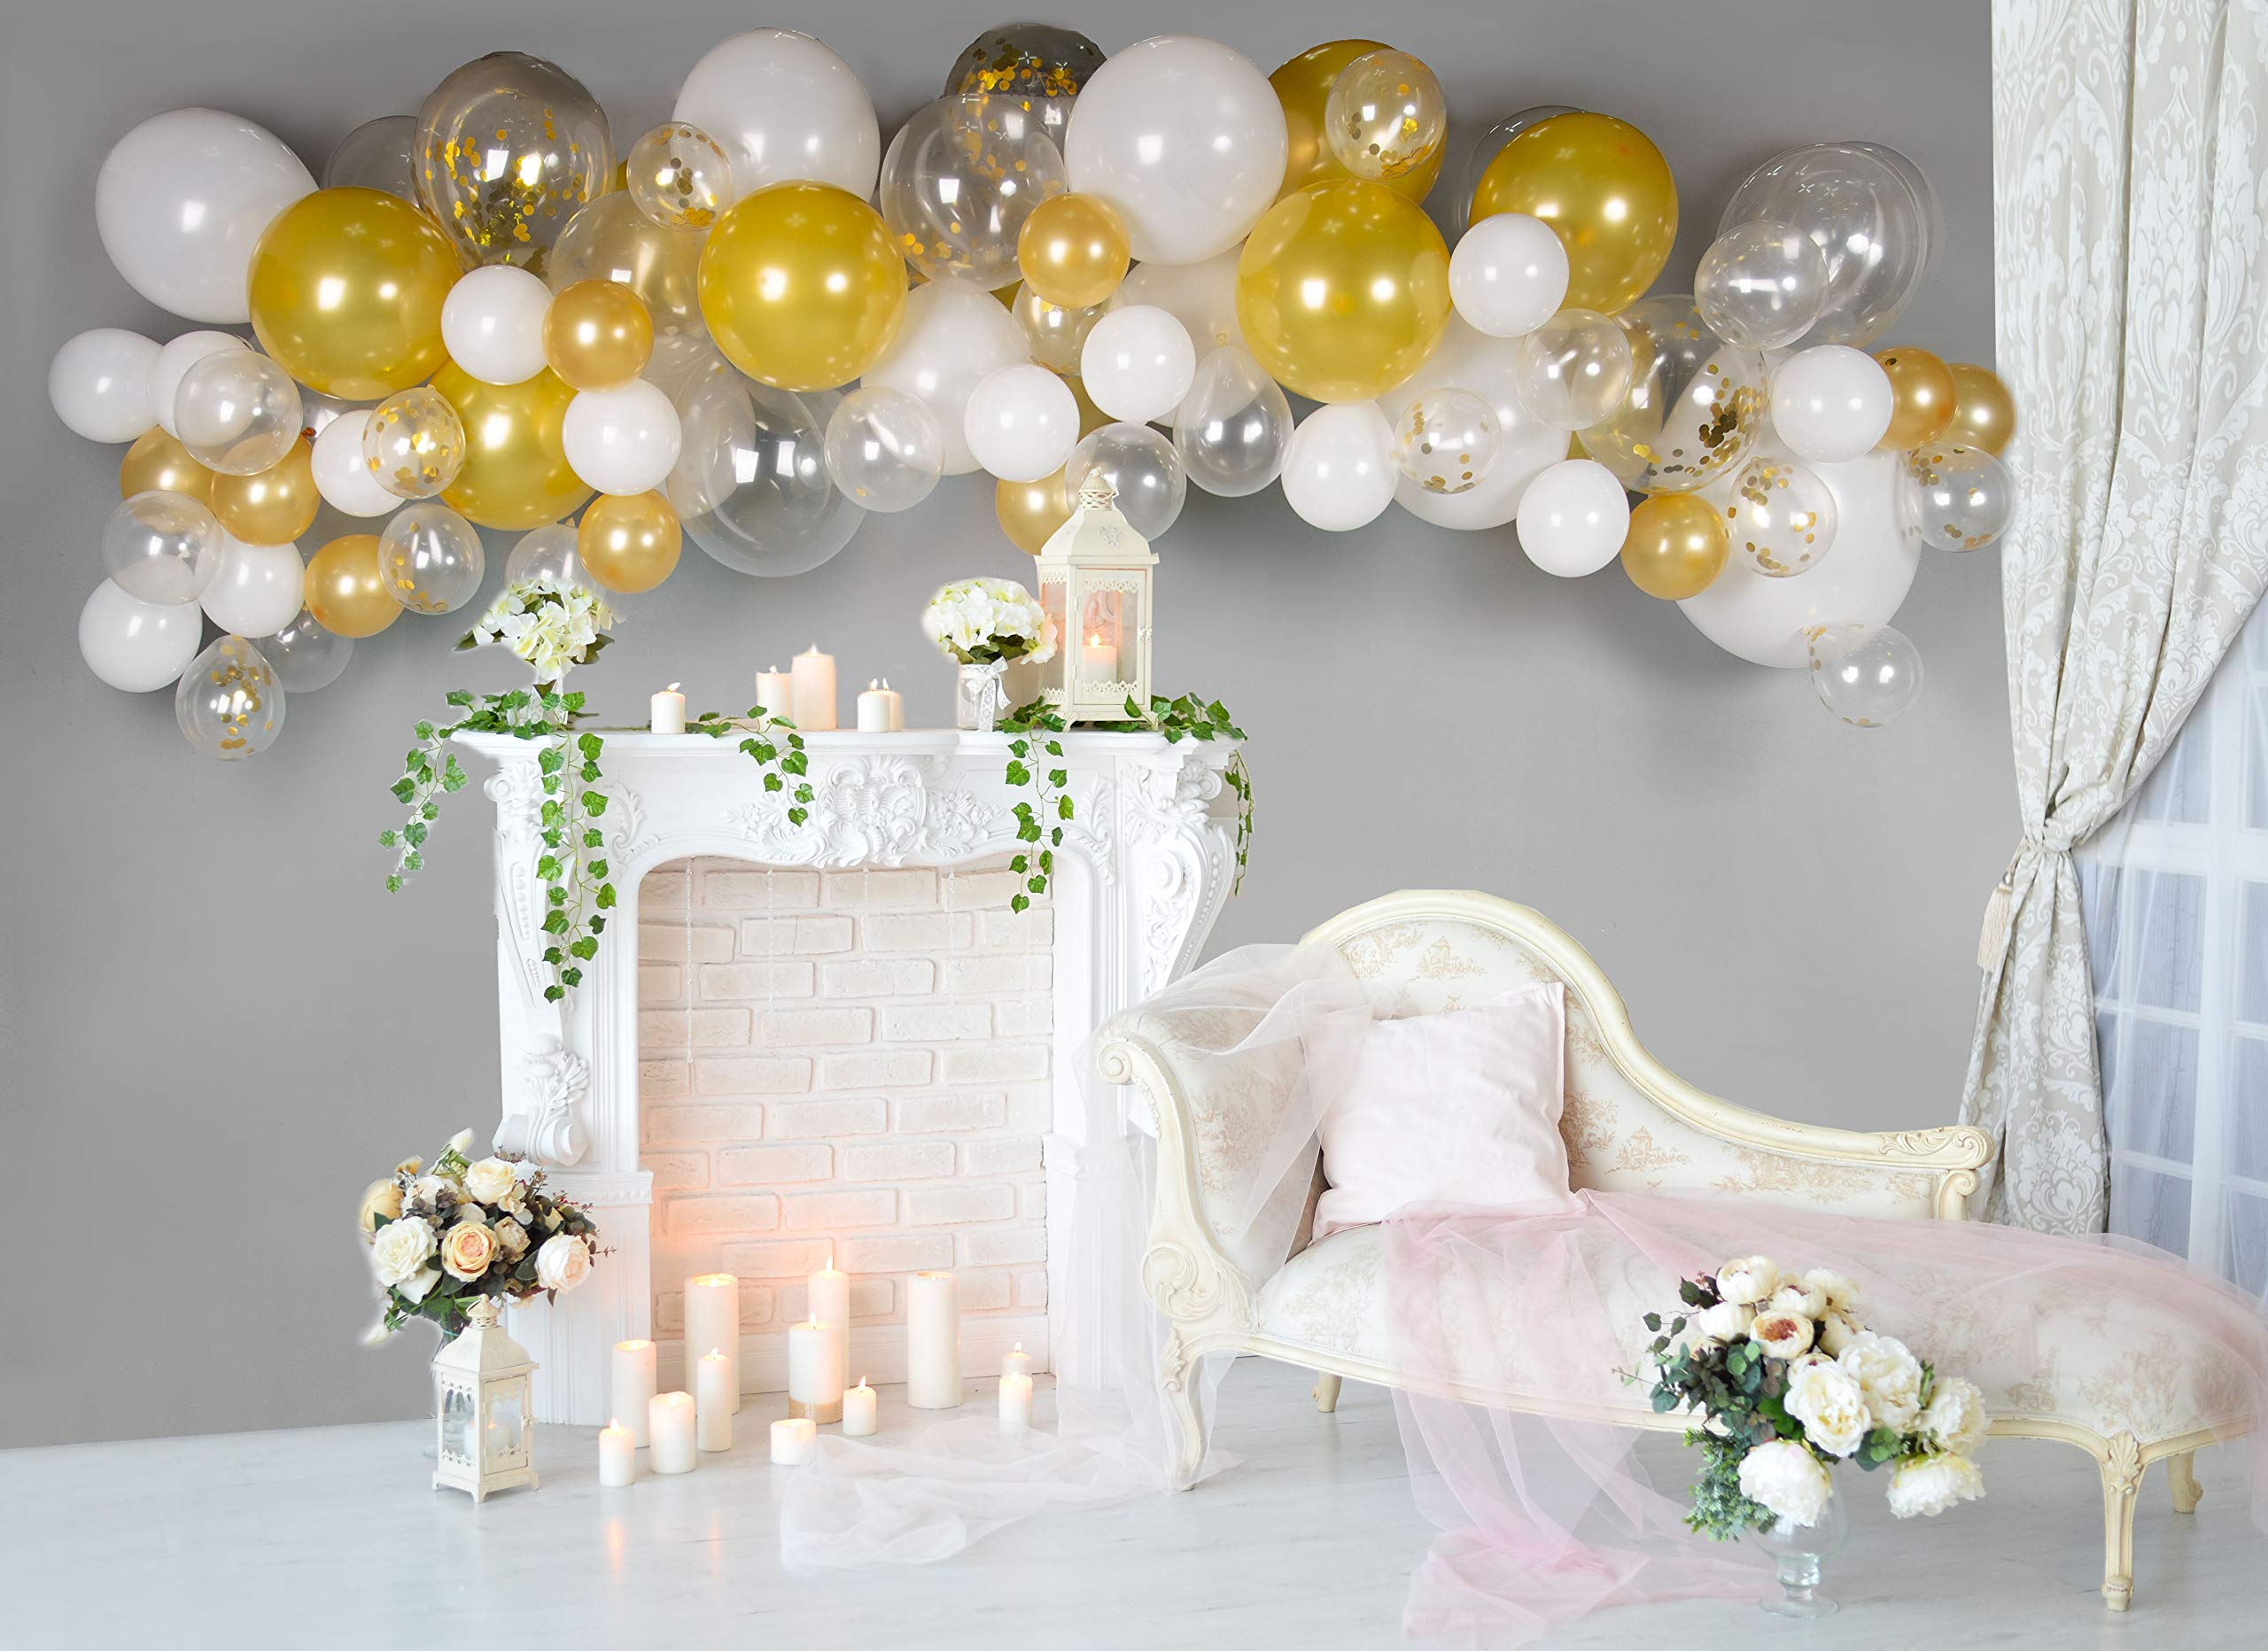 Balloon Arch & Garland Kit by Serene Selection White & Gold for Wedding, Bridal Shower, Birthdays, Baby Showers, S, M, L Balloons, 16 ft Balloon Strips, Tying Tool, Pump, 100 Balloon Dot Glue